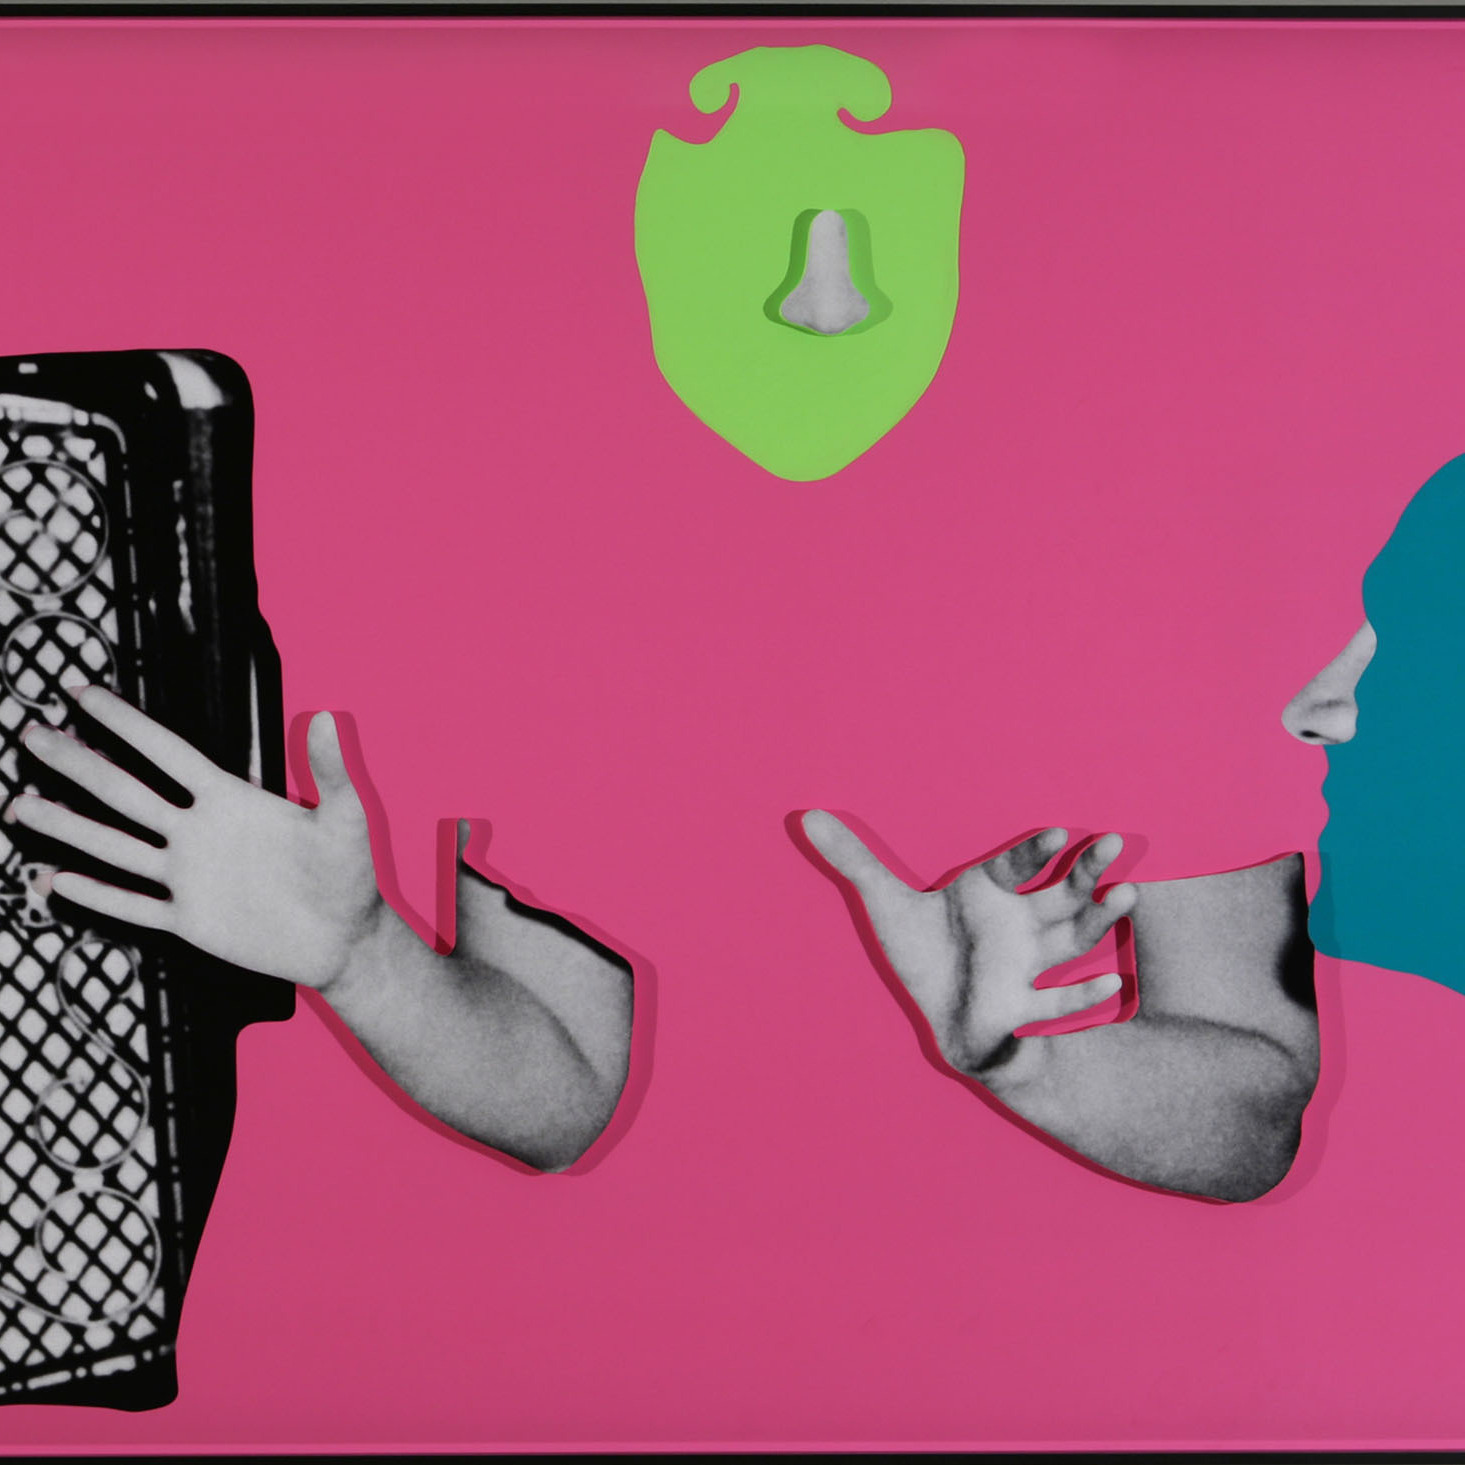 permission pending. Noses & Ears, Etc. (Part Two): Two (Bluegreen) Faces With Noses And Ears, One (Yellowgreen) Face With Nose And Three Hands And Accordion, 2006